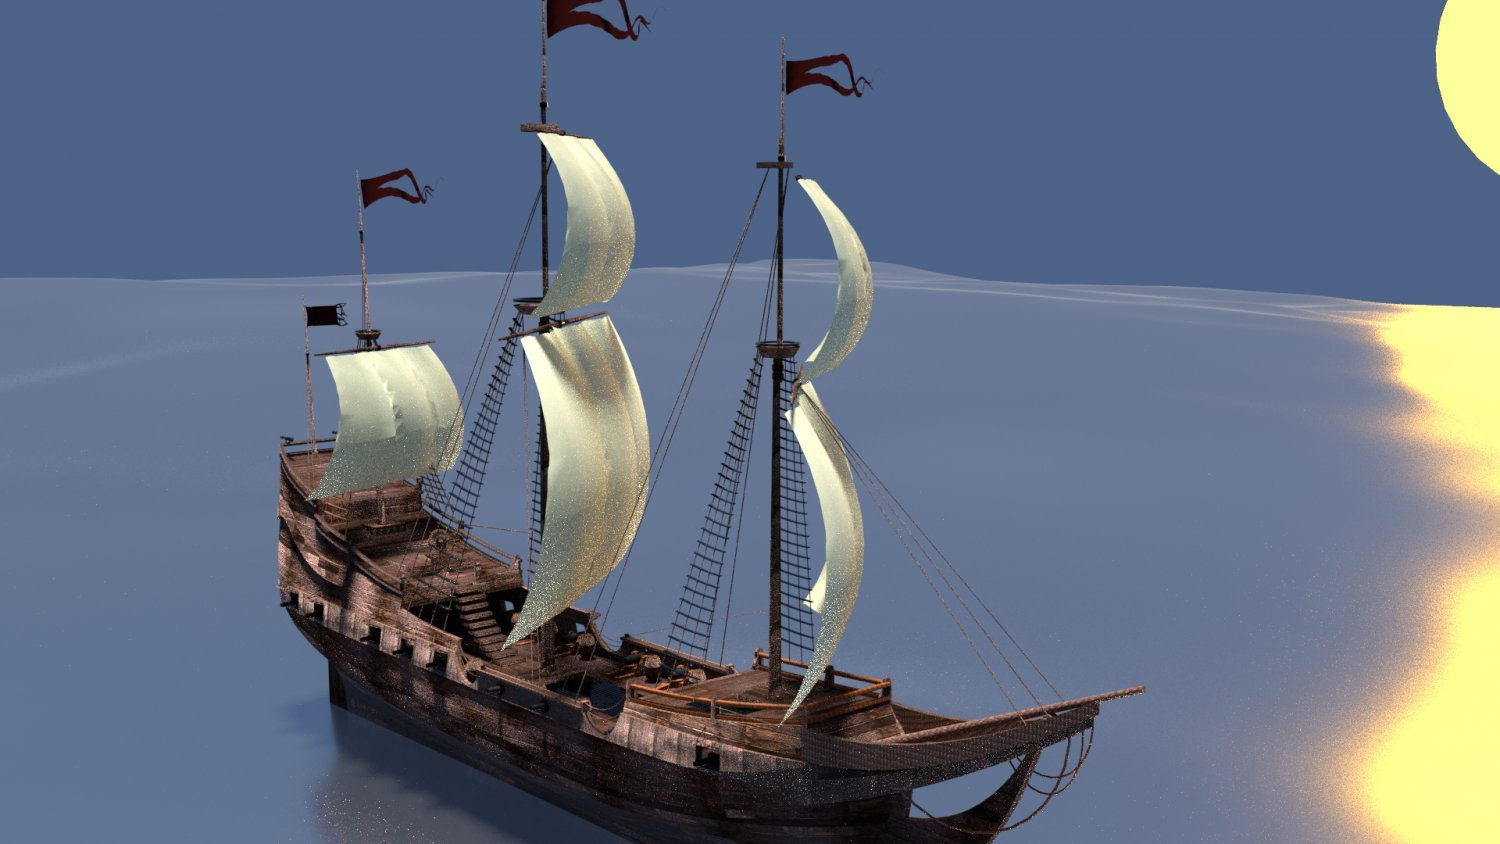 Pirate Ship 3D Model in Battleship 3DExport